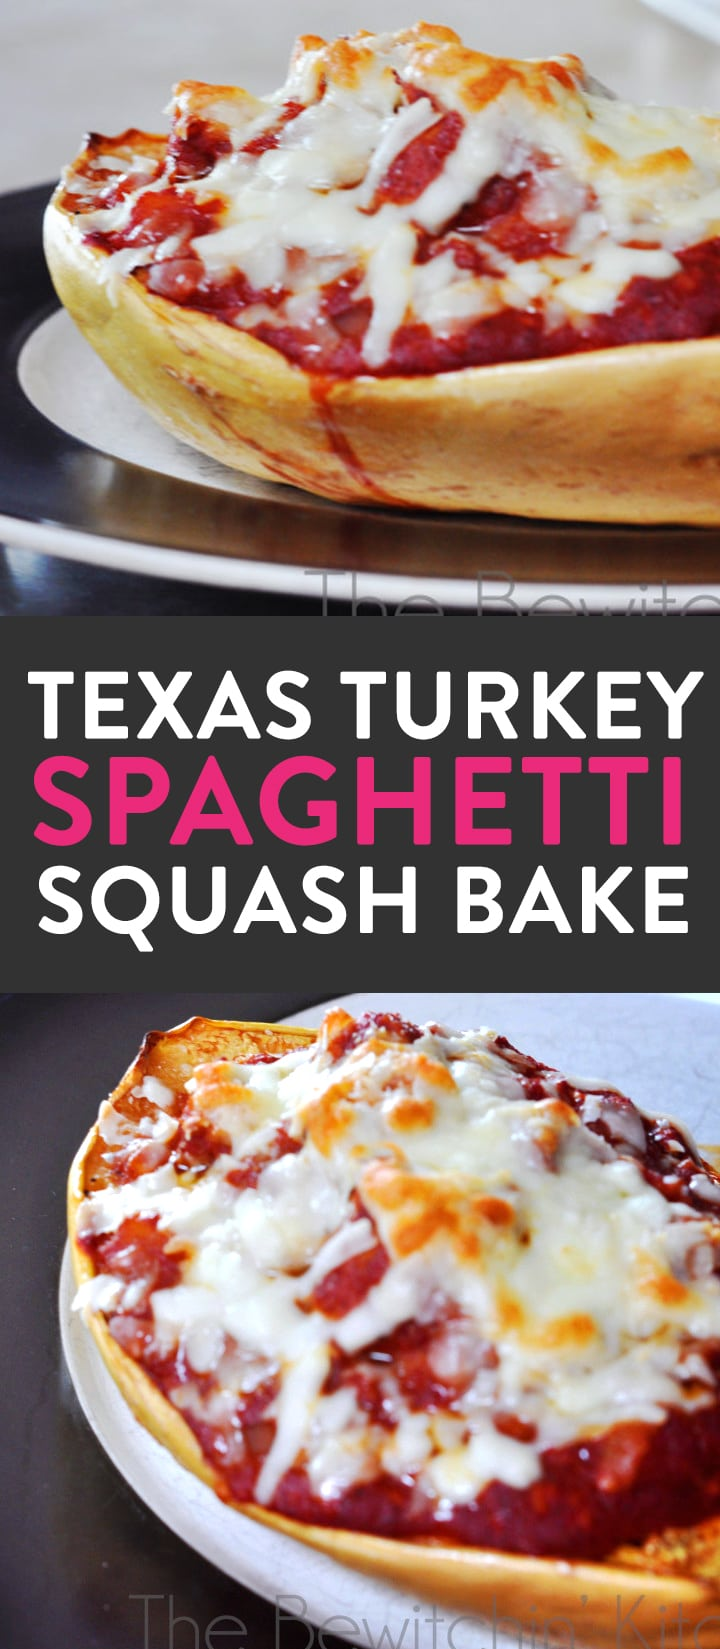 Texas Turkey Spaghetti Squash Bake. This gluten free recipe is not only a healthy dinner idea but it's delicious and man approved. Spaghetti squash recipes are a great way to sneak in some extra vegetables for your family. Take out the cheese to make it paleo.